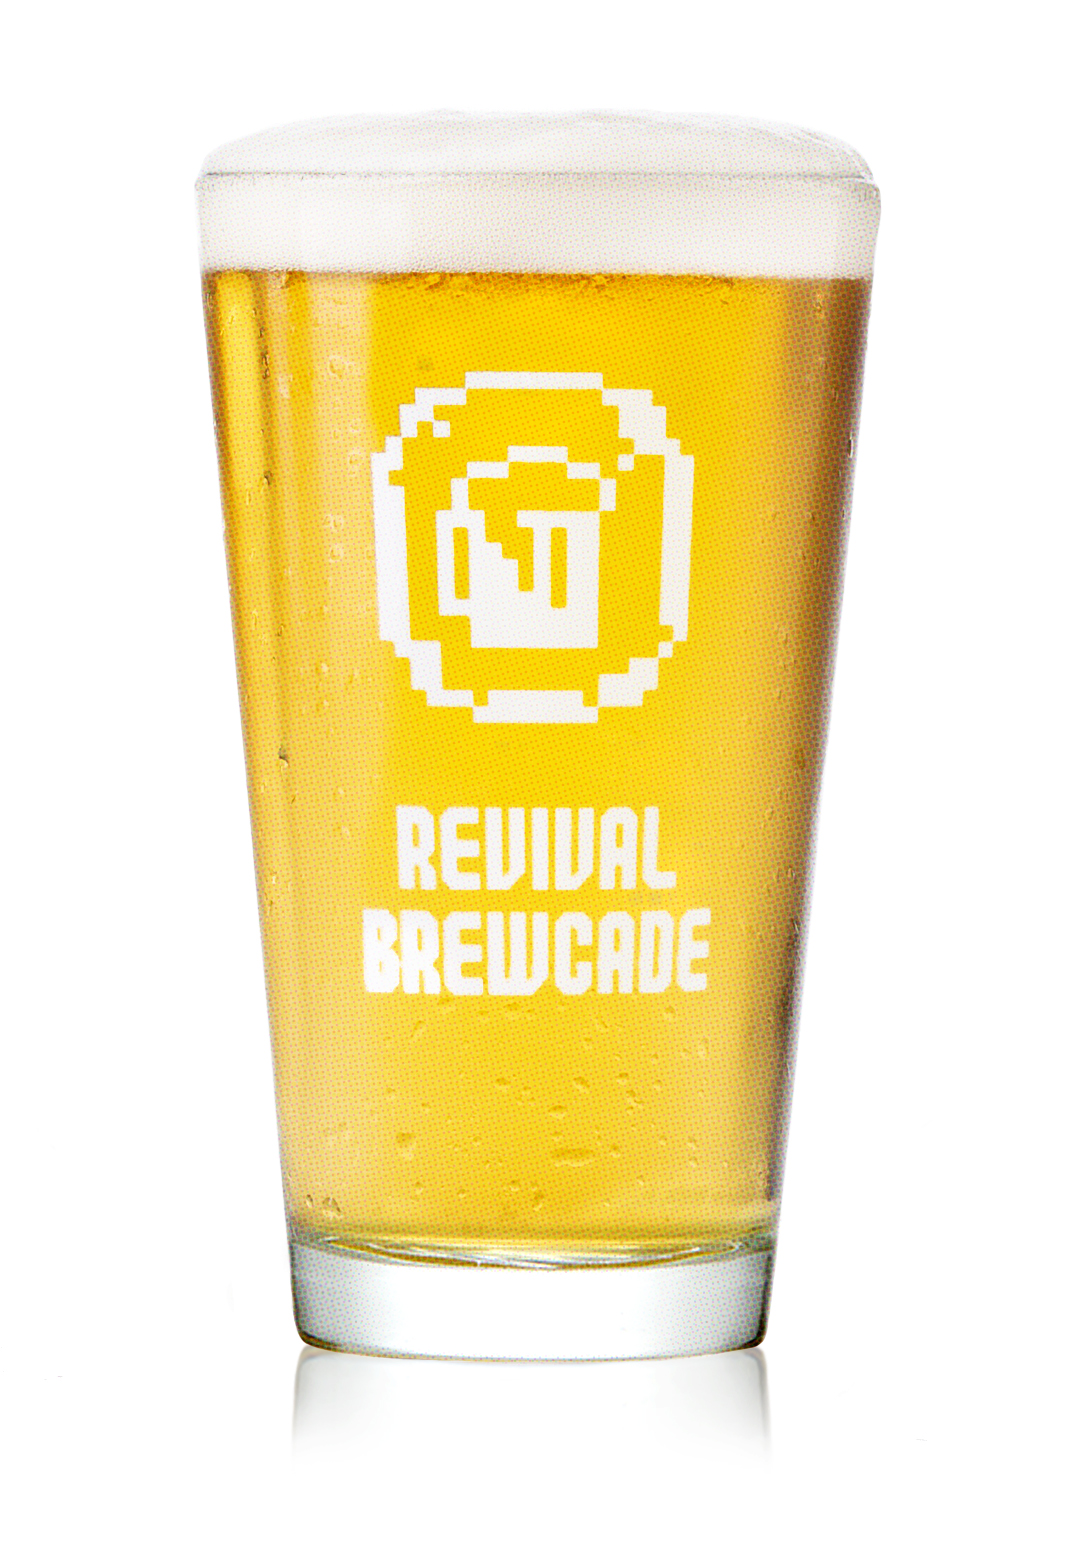 Revival Brewcade